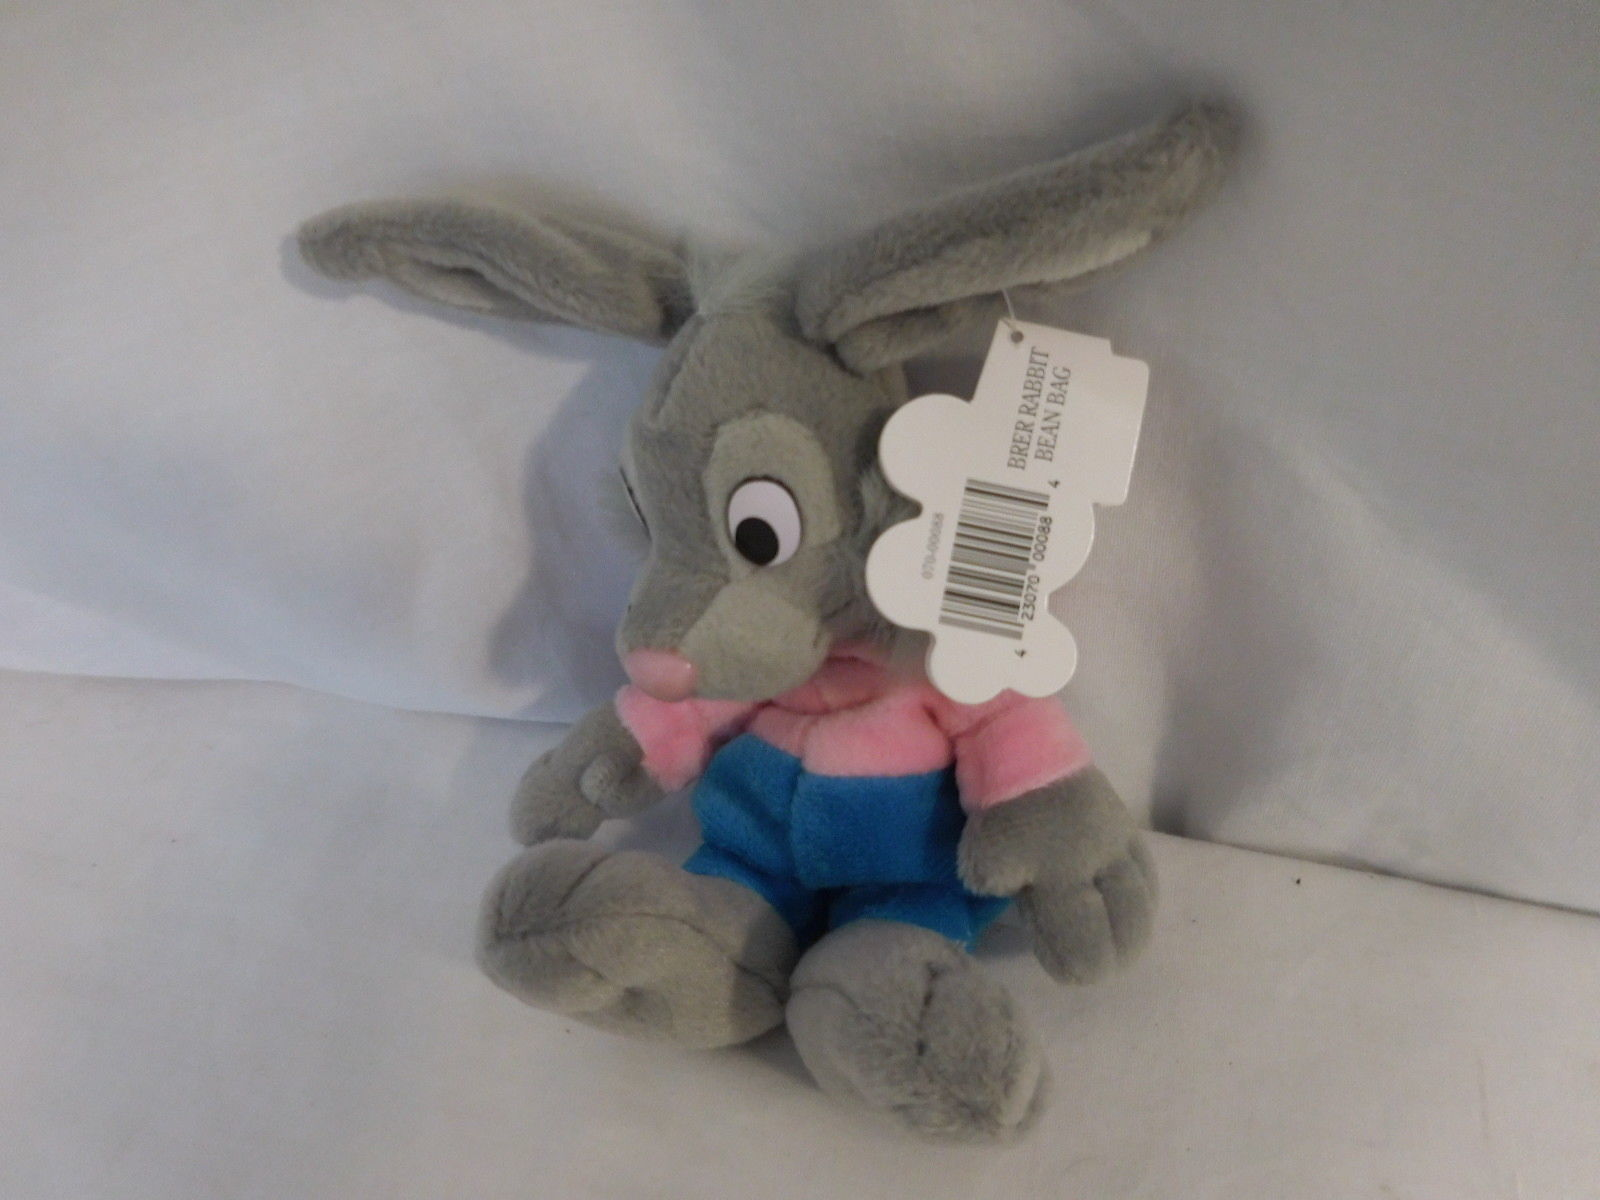 Disney Bean bag set Adventures of Brer Rabbit Fox Mouseketoys Beanie Babies  Rar 5e5fe0975774